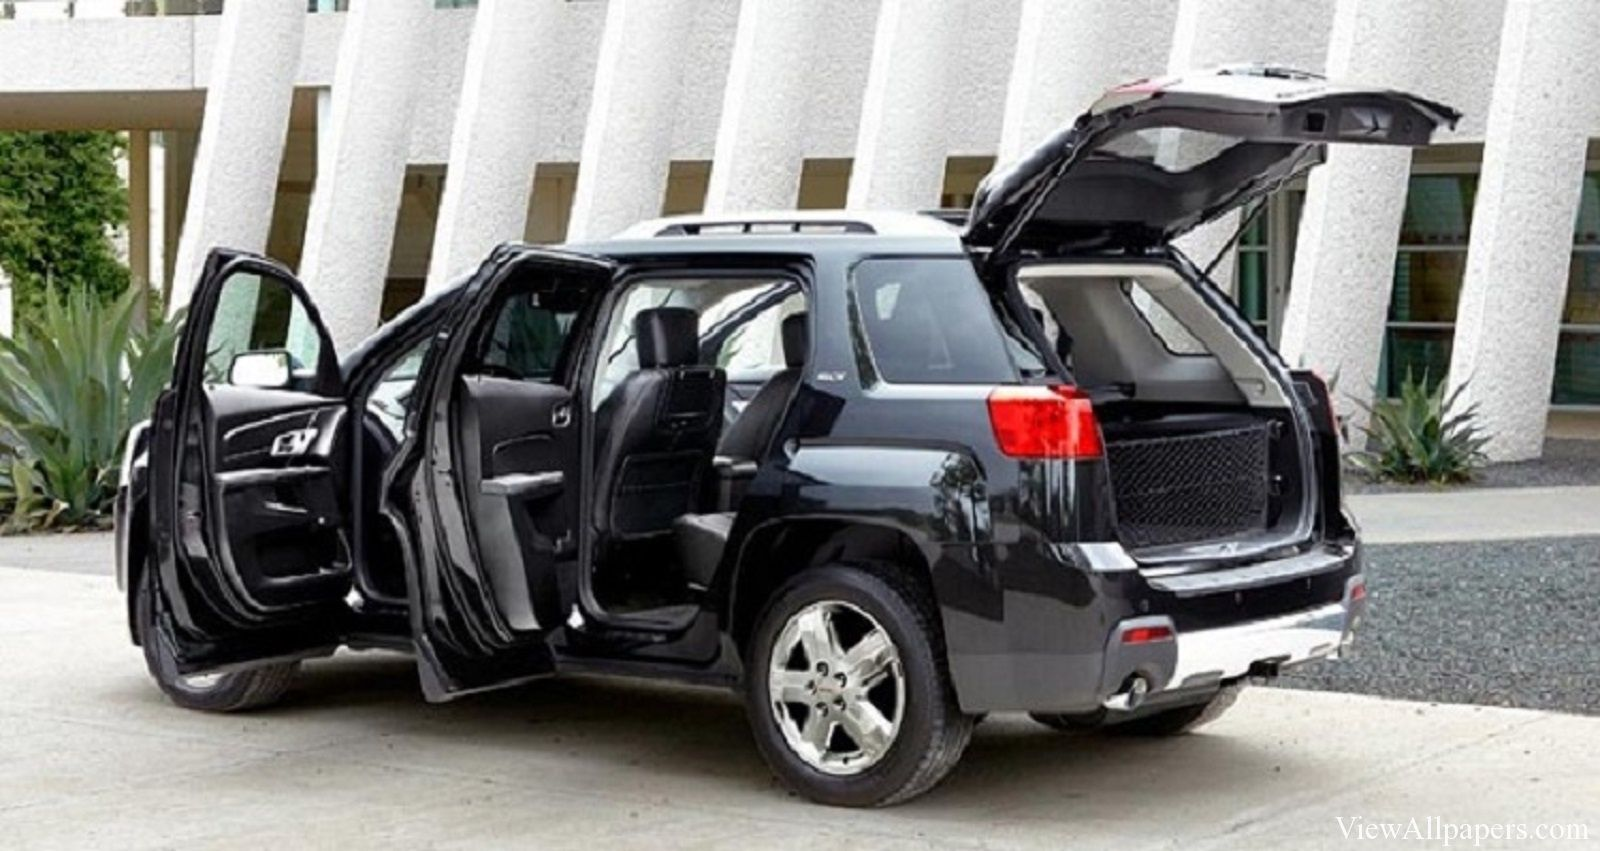 2016 Gmc Terrain Photos Gmc Terrain Small Suv Suv